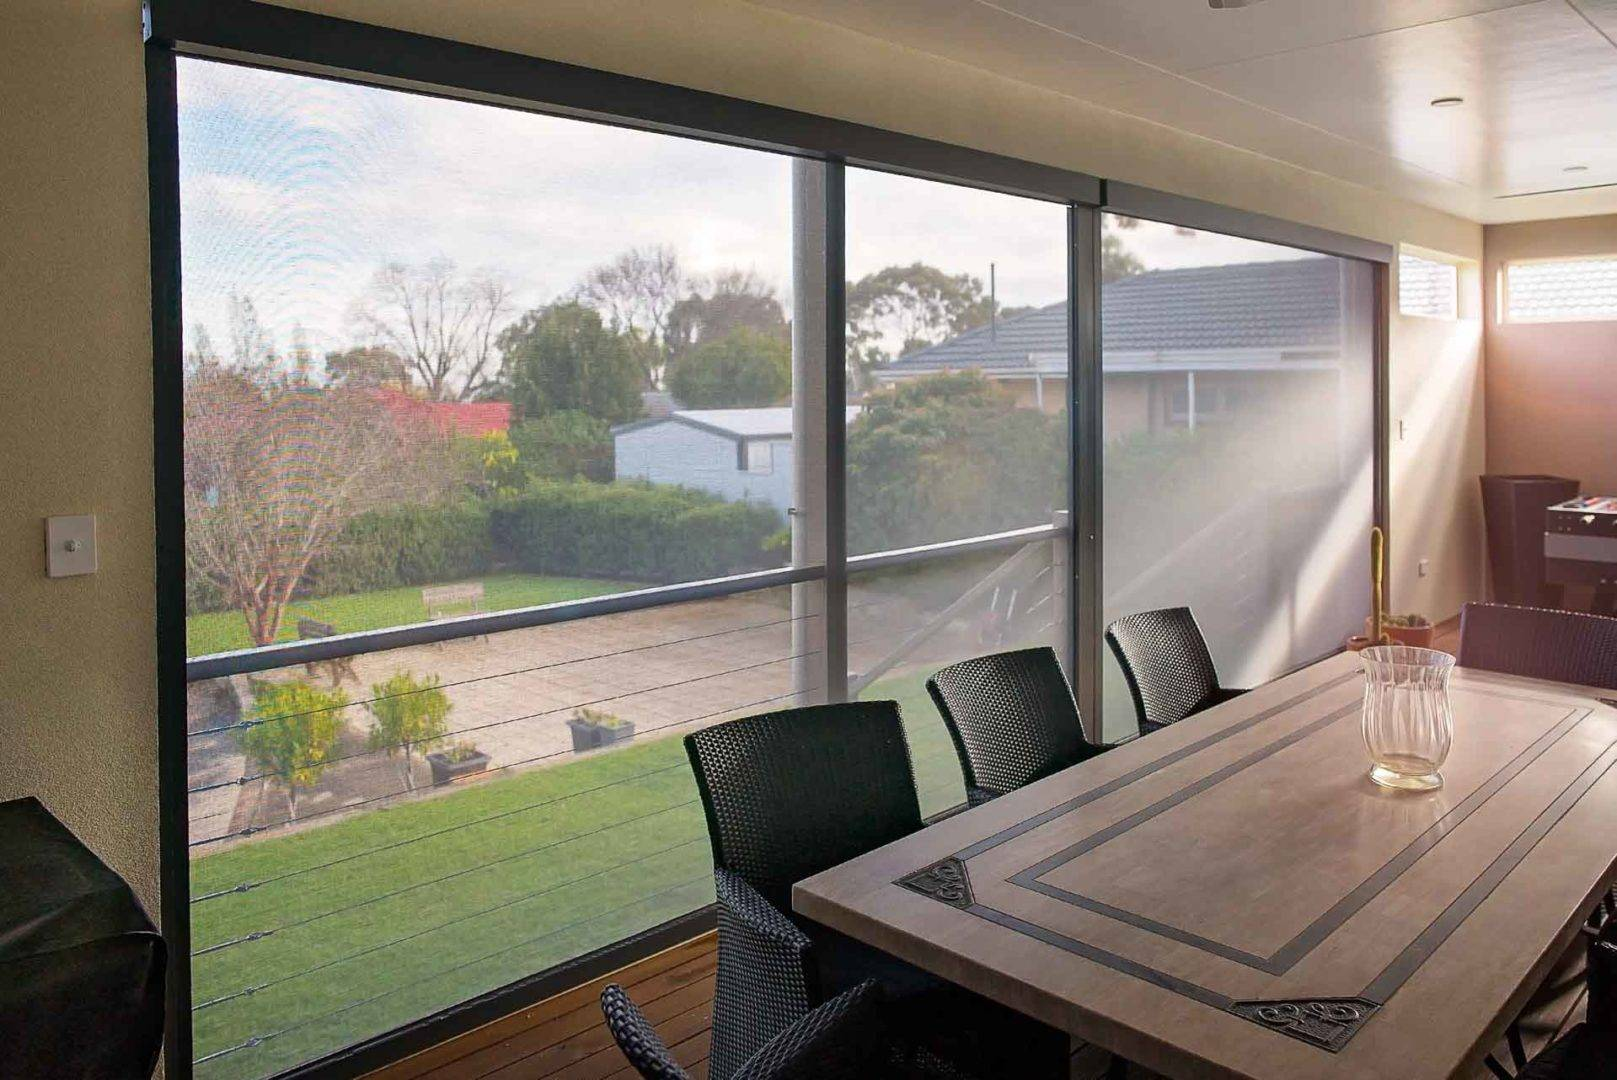 How you can entertain in comfort with outdoor balcony blinds - Shade outdoor balcony blinds, Australian Outdoor Living.